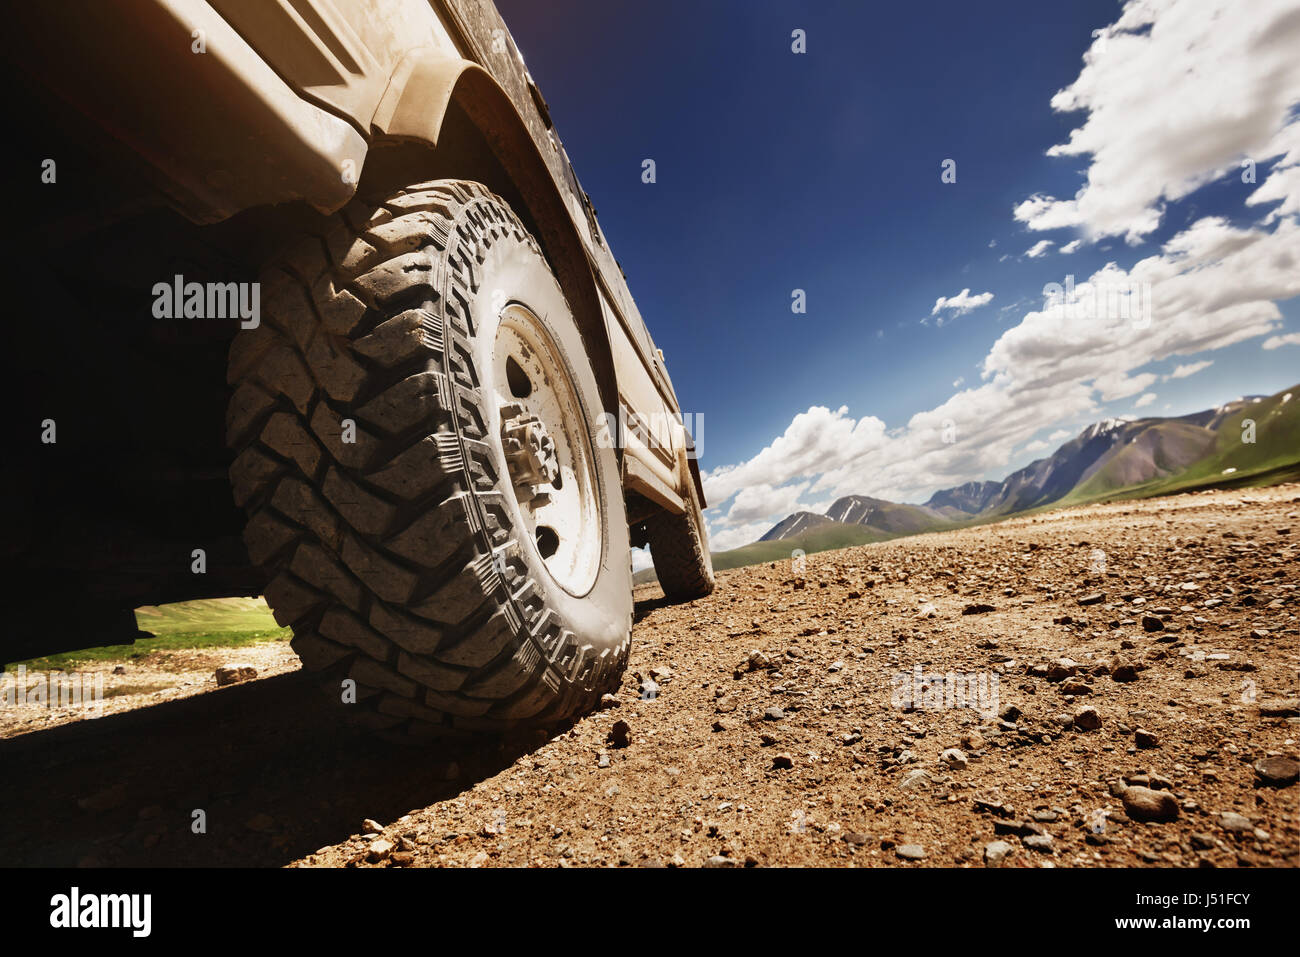 Big offroad car wheel on country road - Stock Image